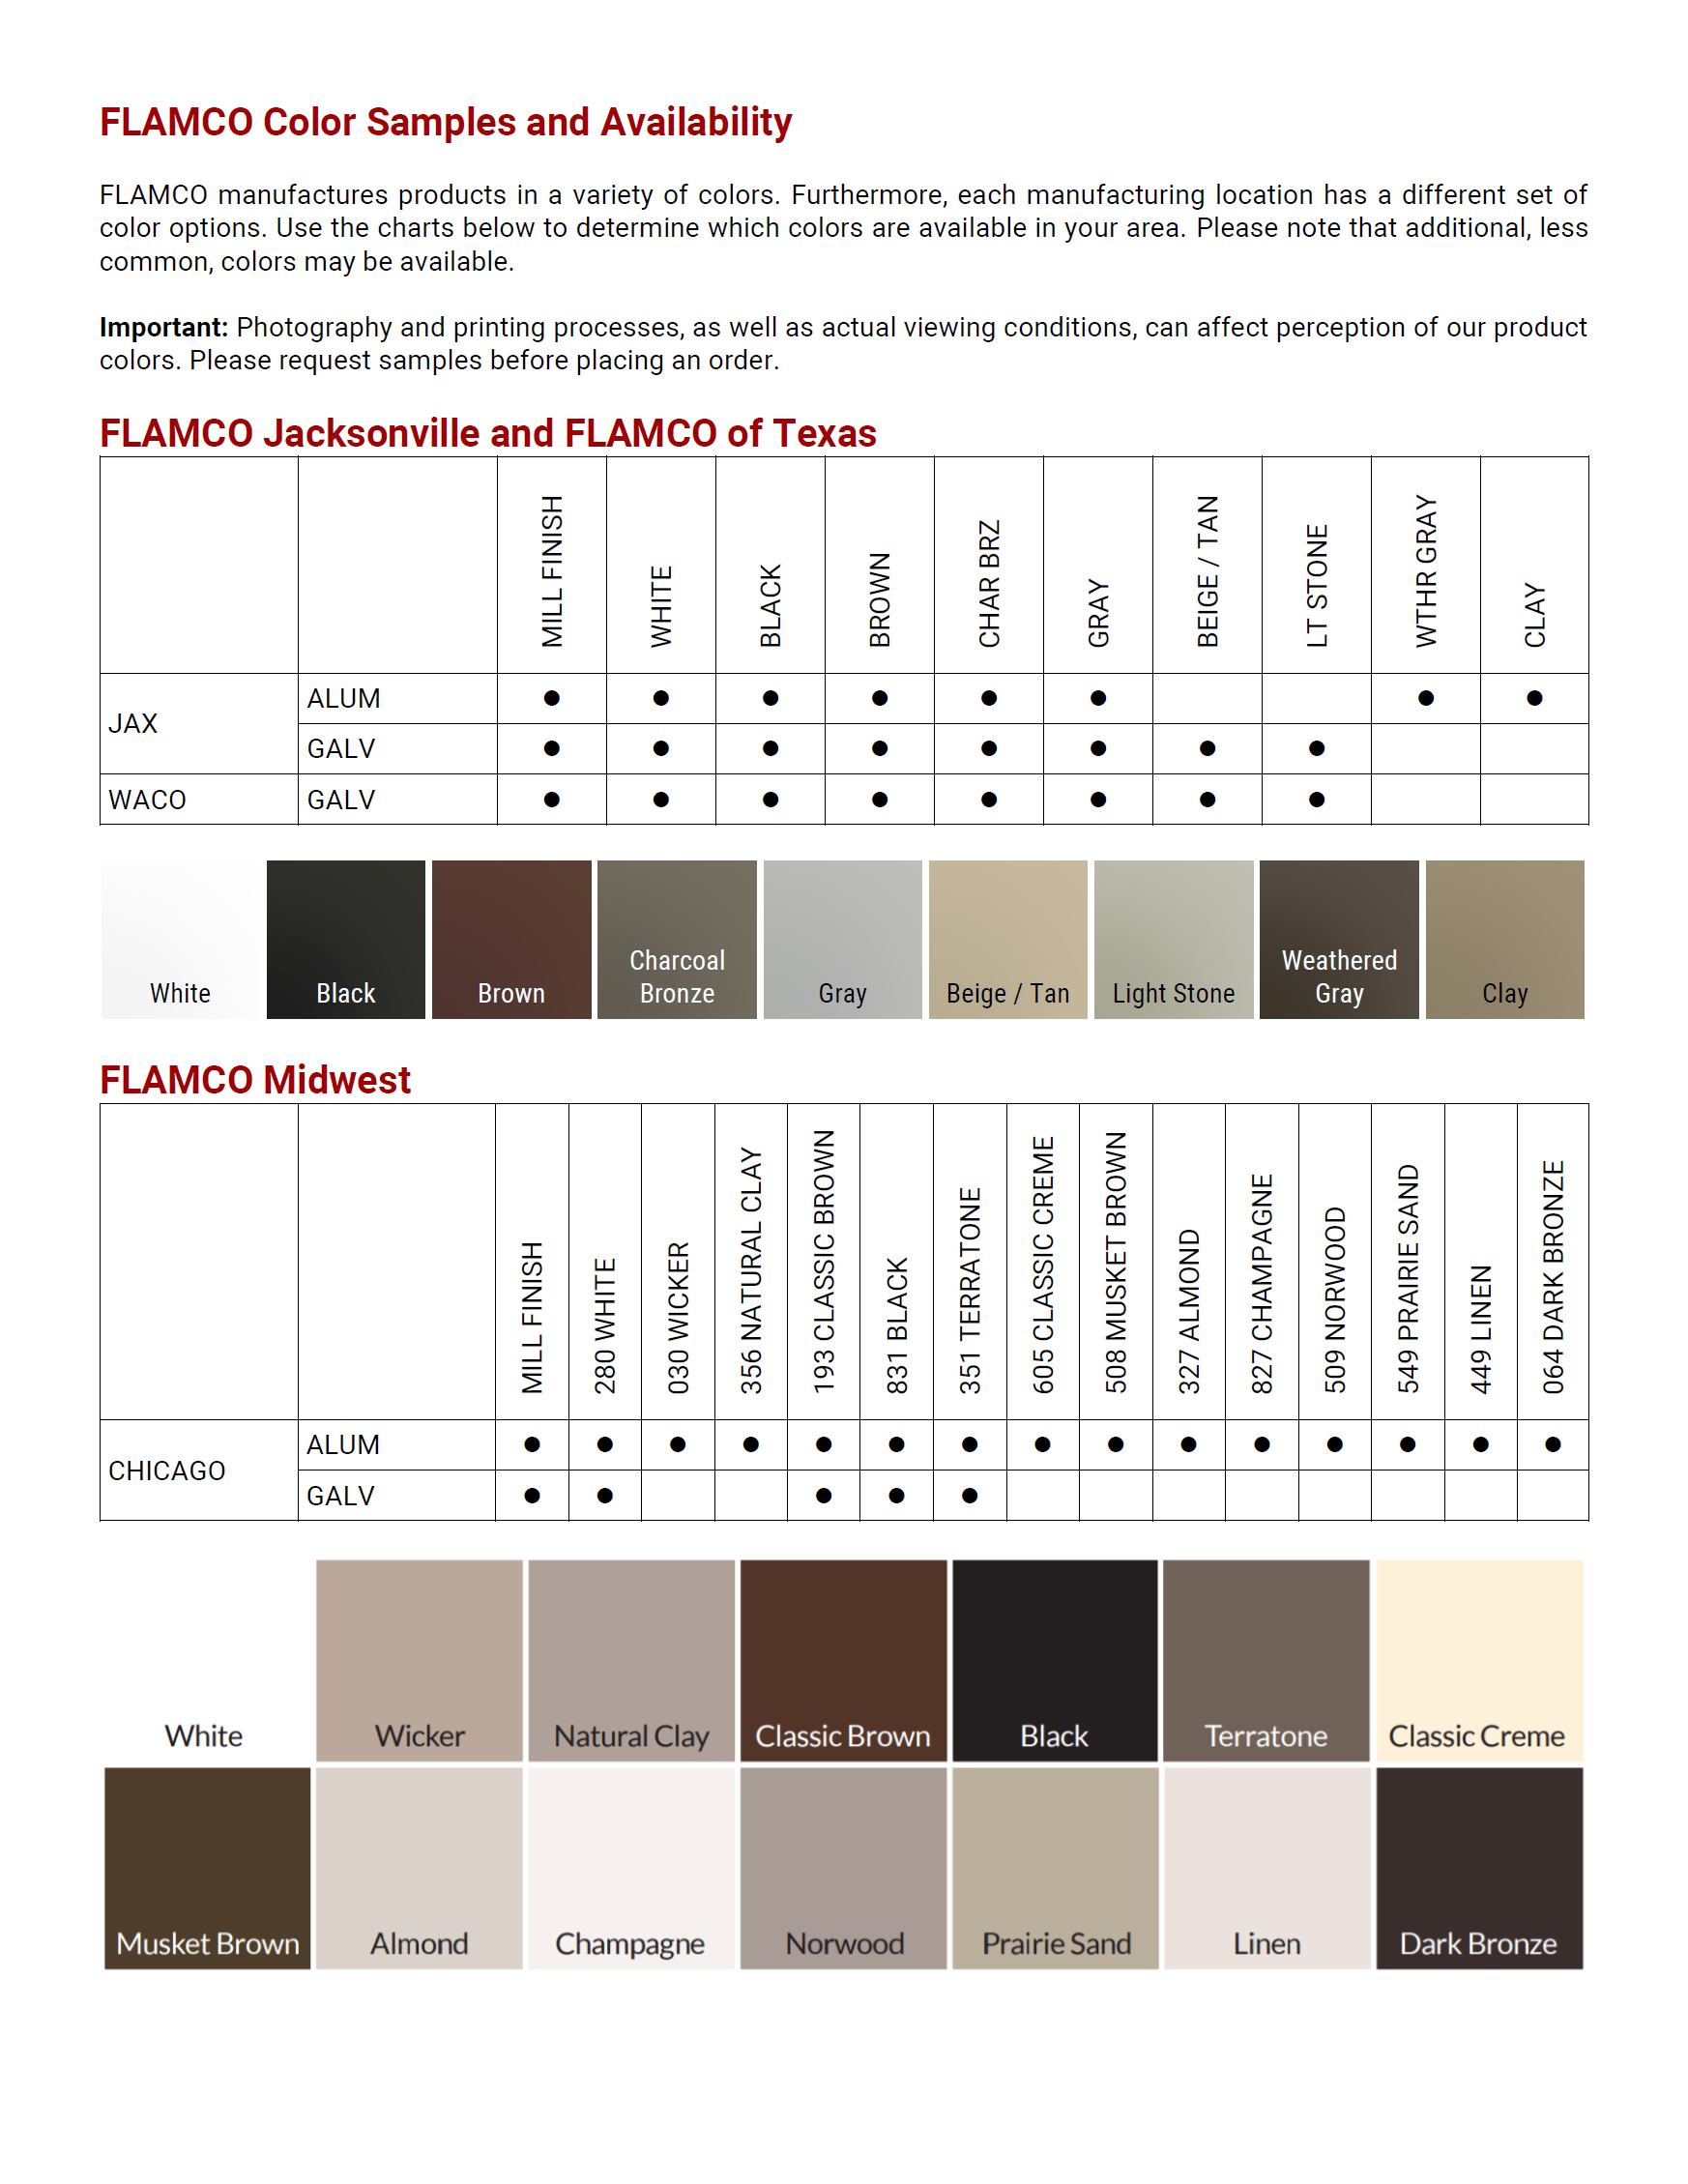 FLAMCO Color Samples and Availability